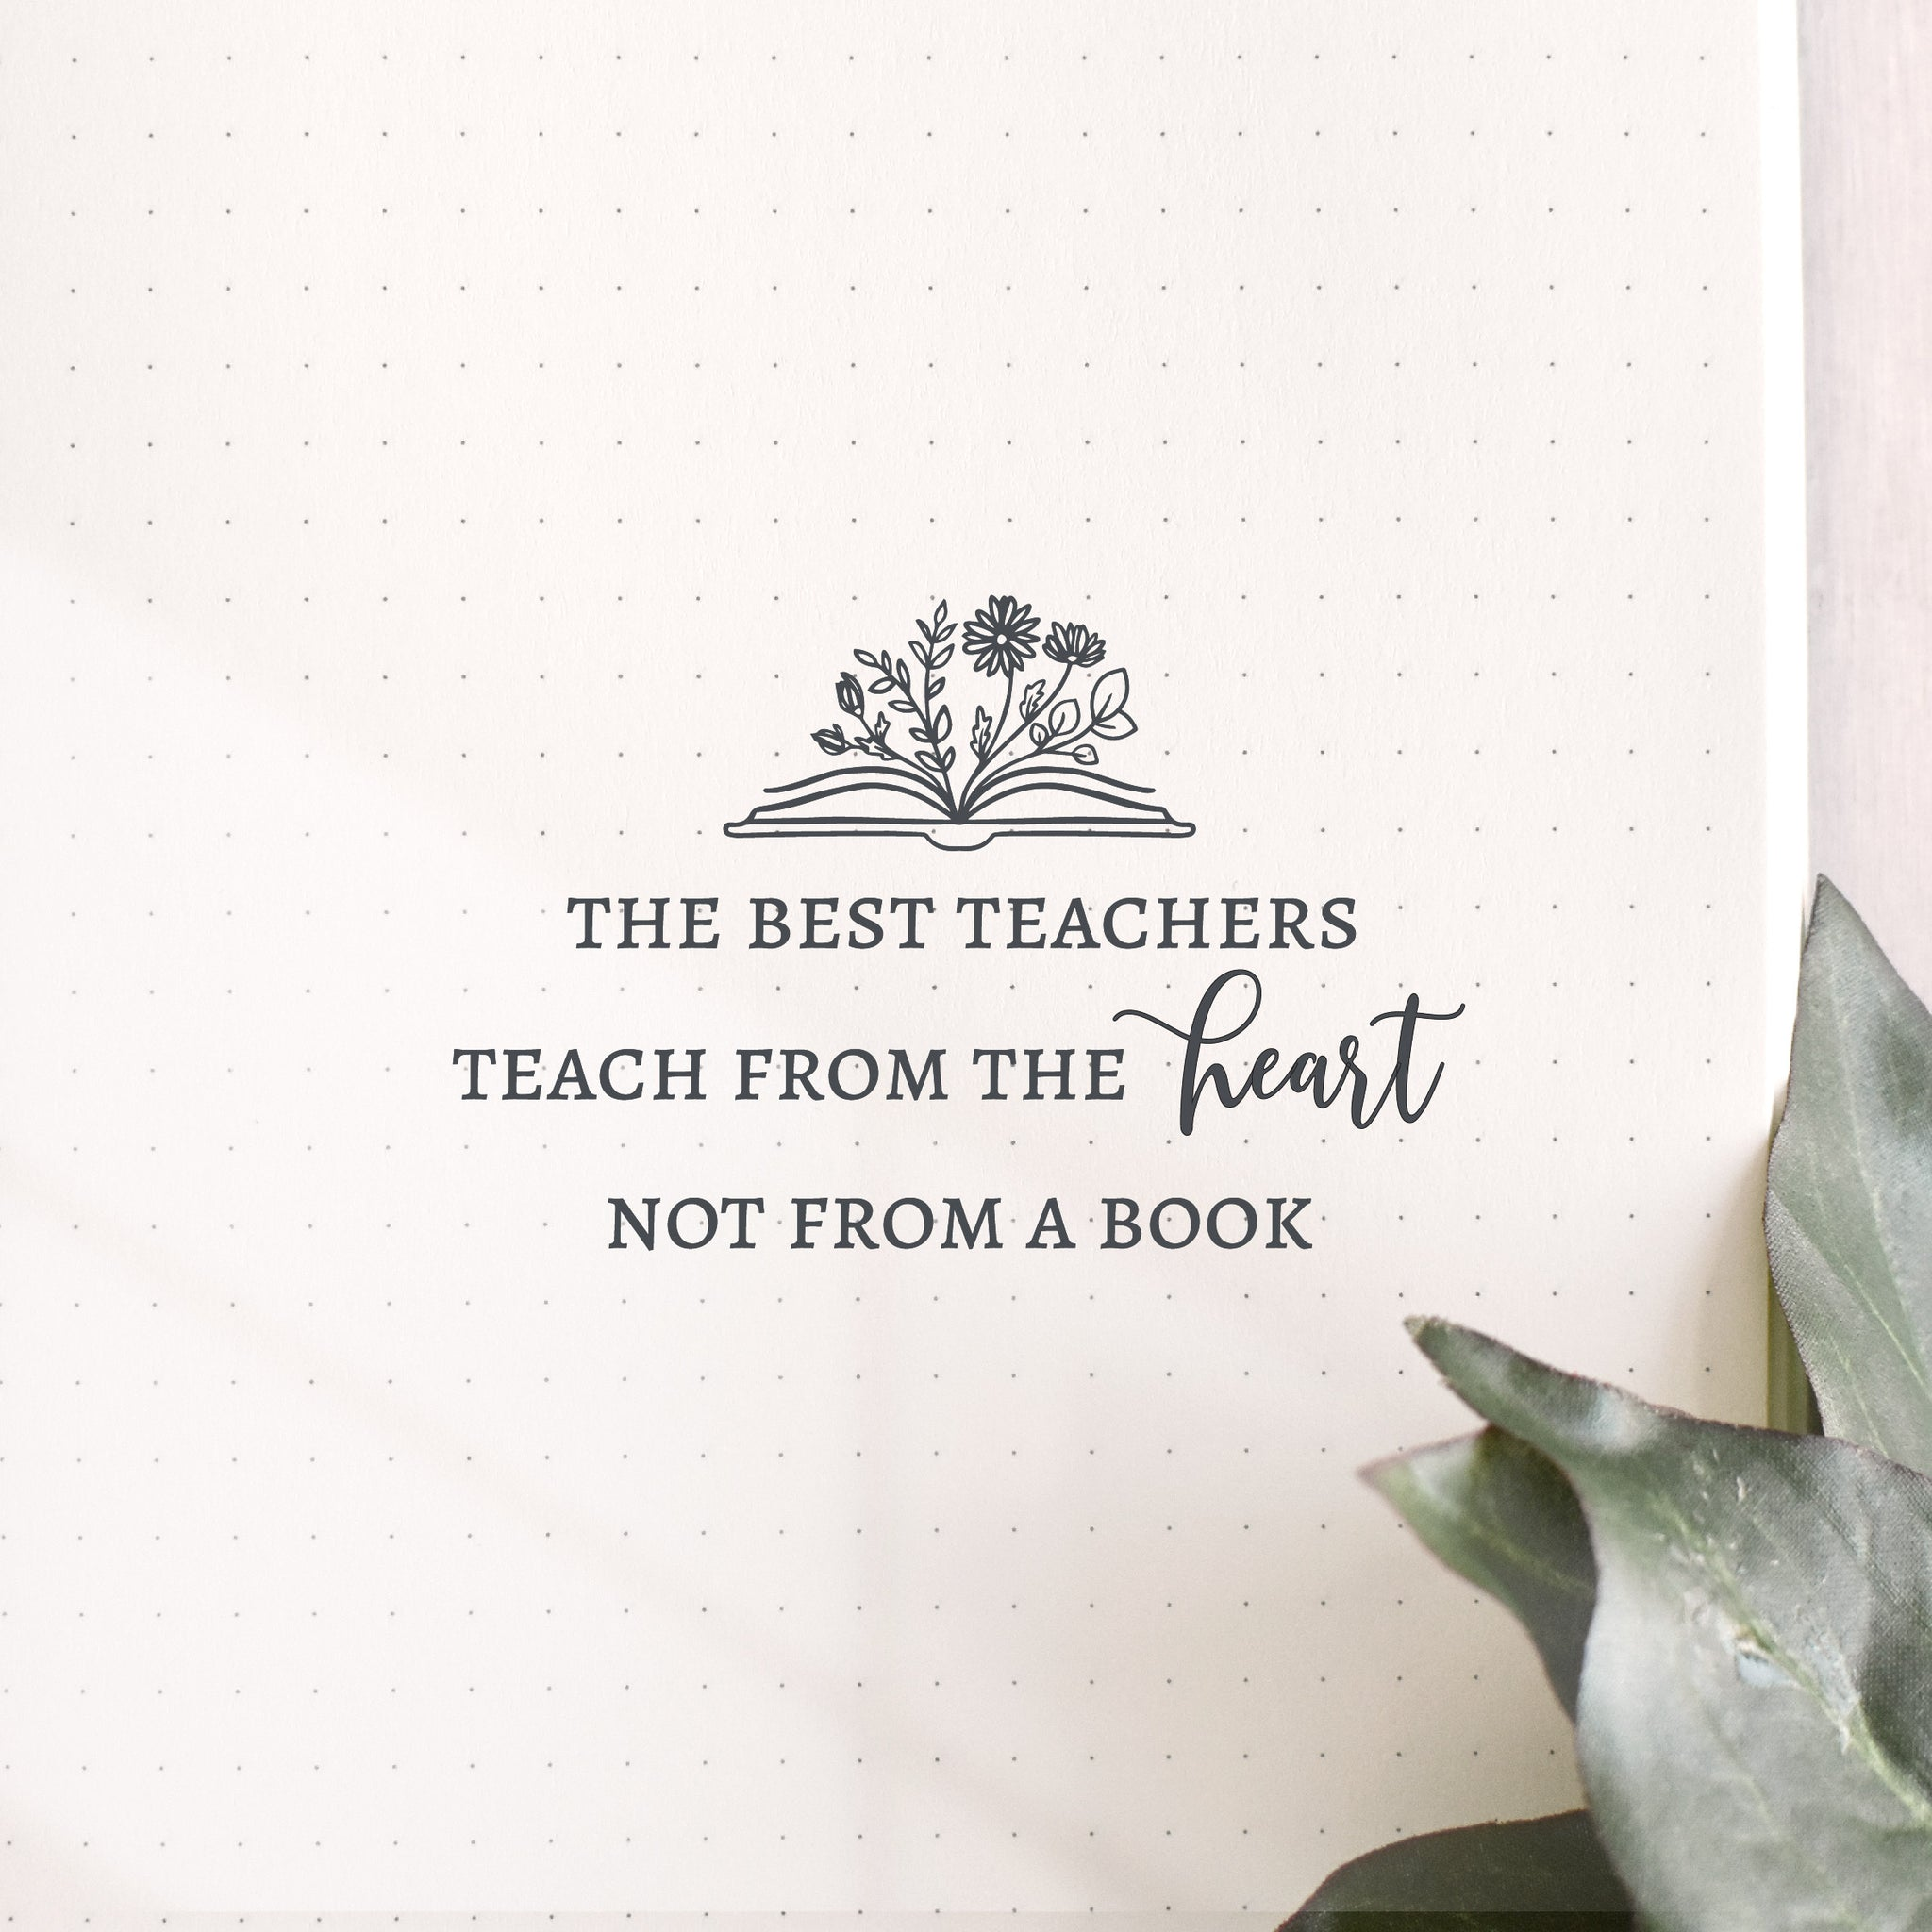 From The Heart Teacher Stamp